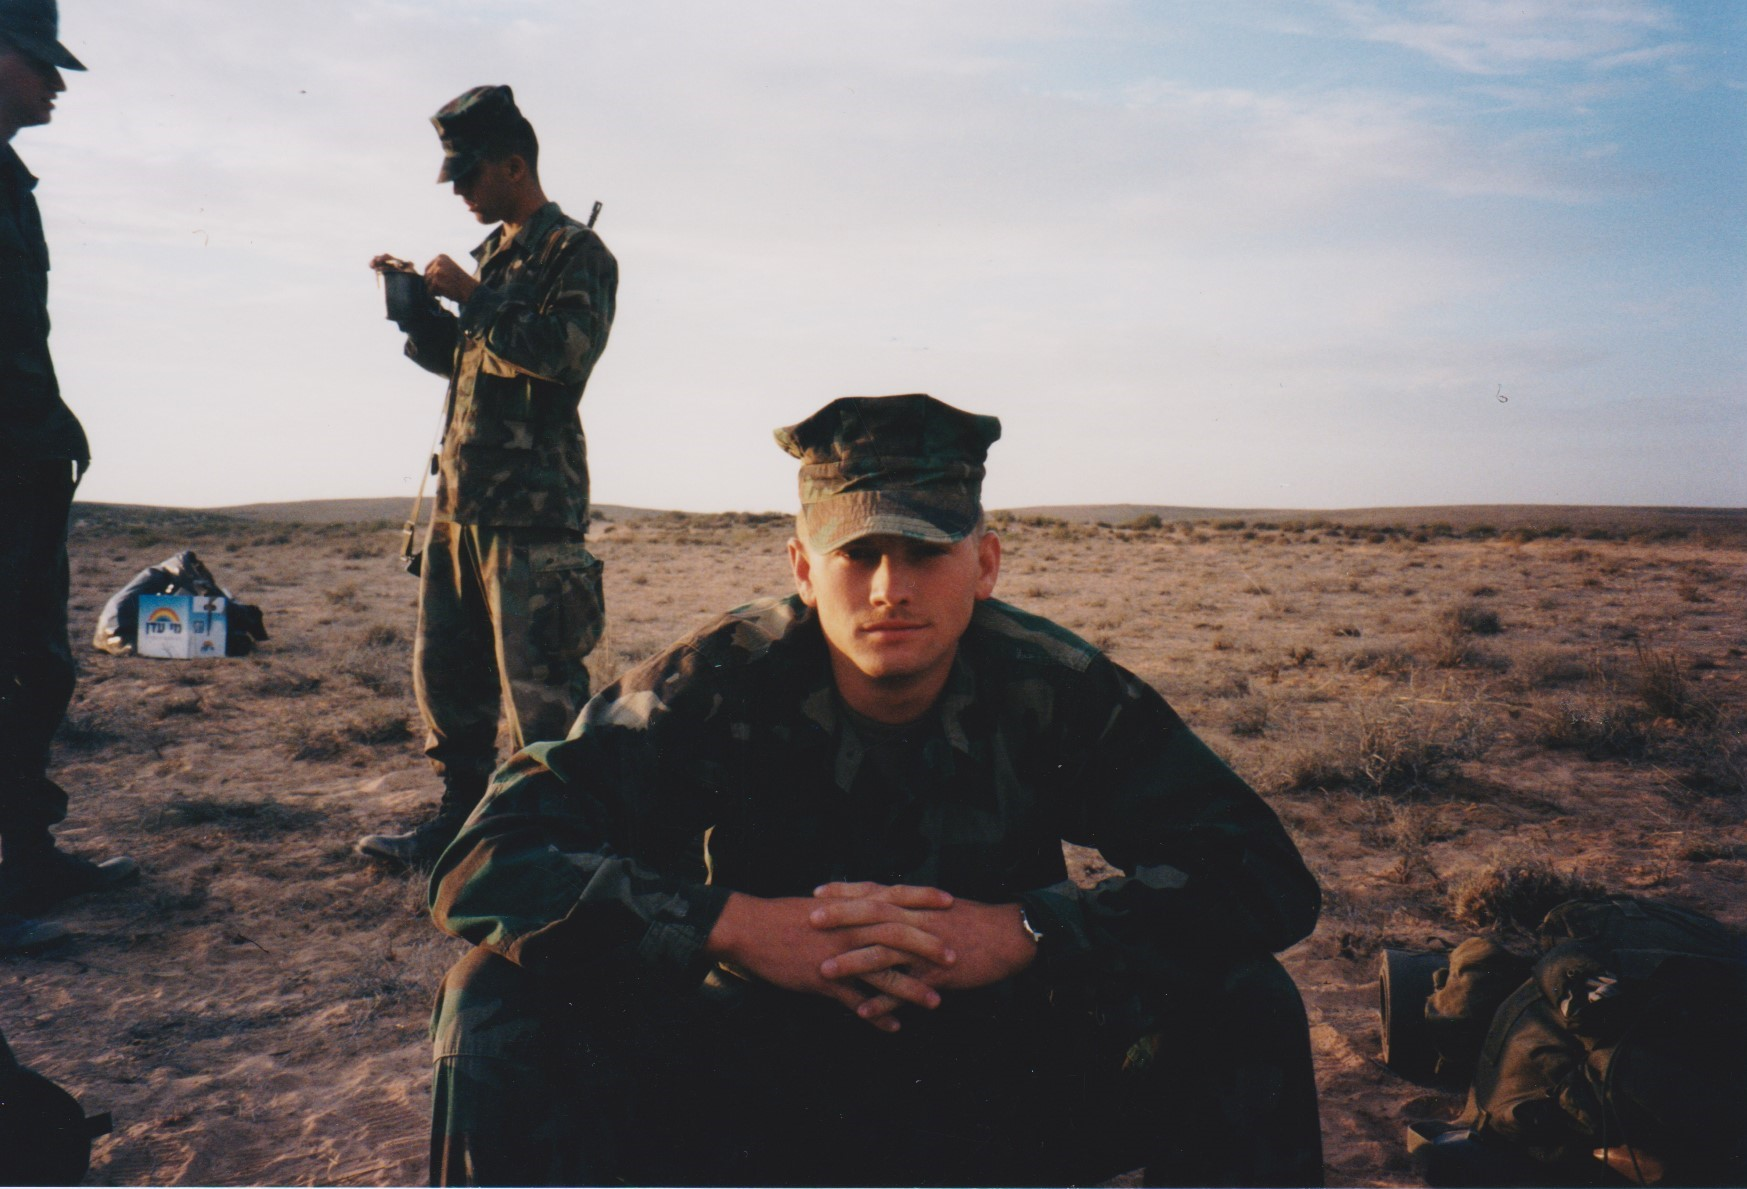 Operation Bright Star